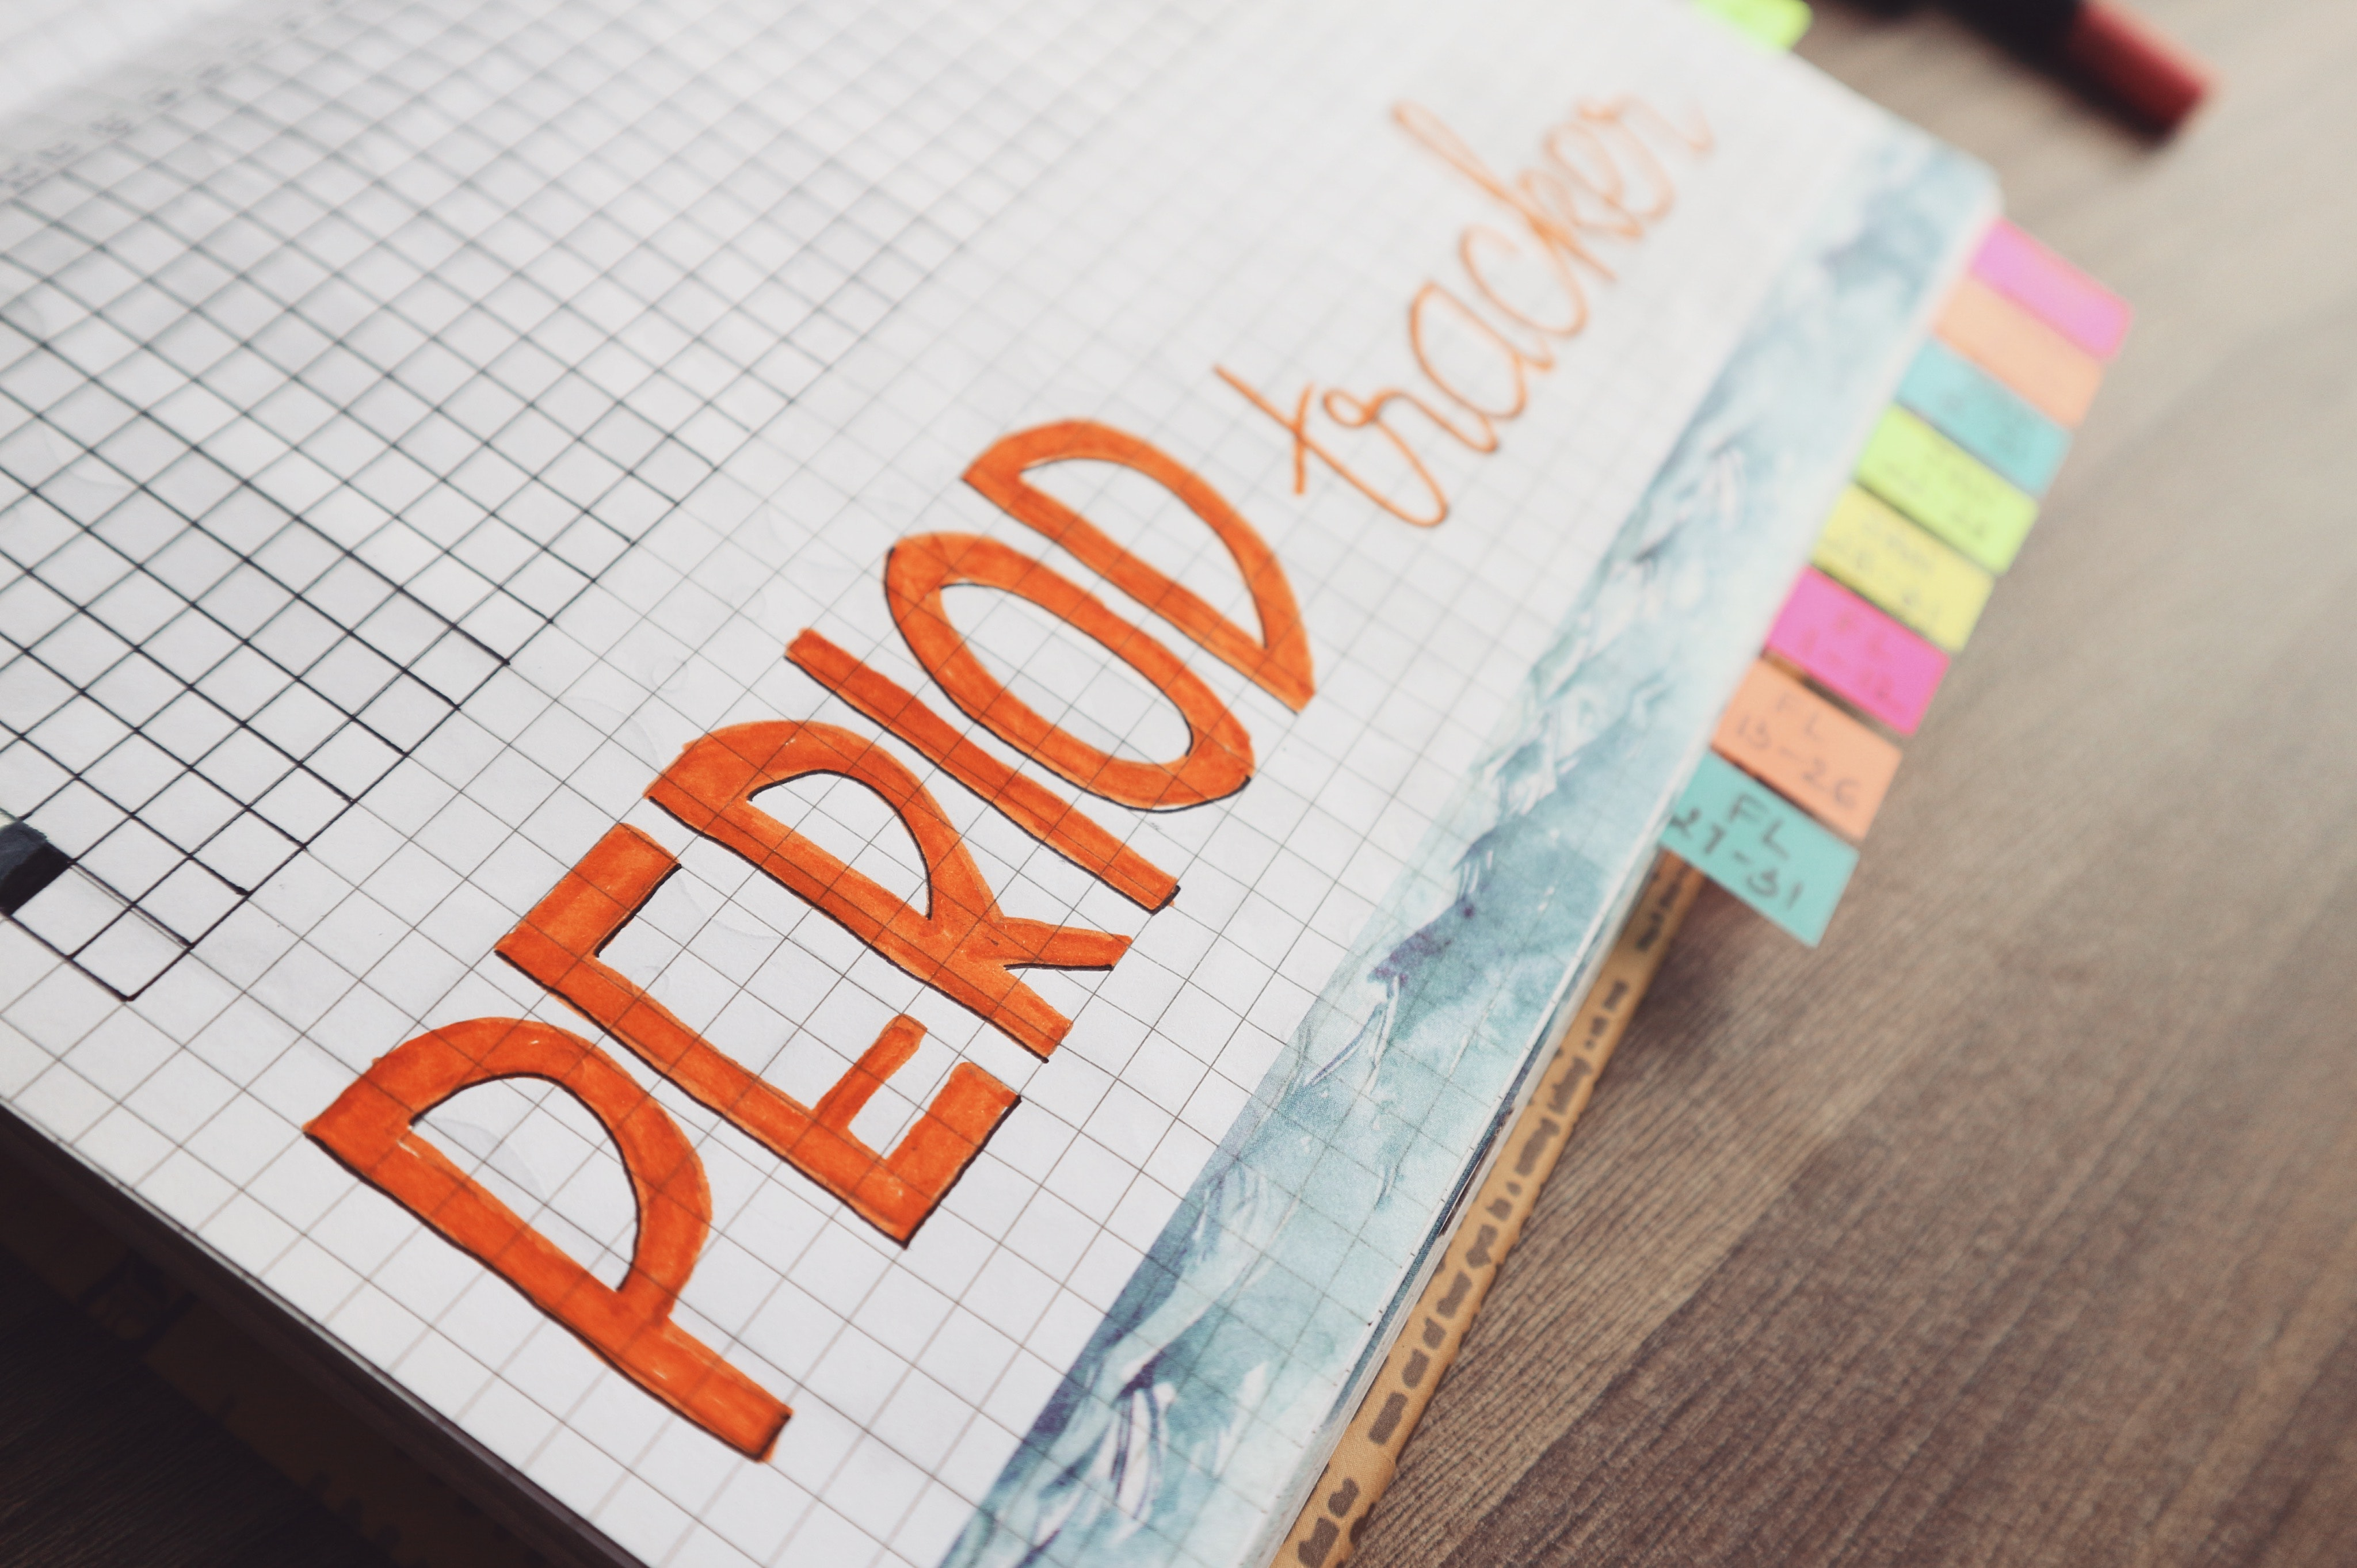 Period trackers written on graphing notebook photo